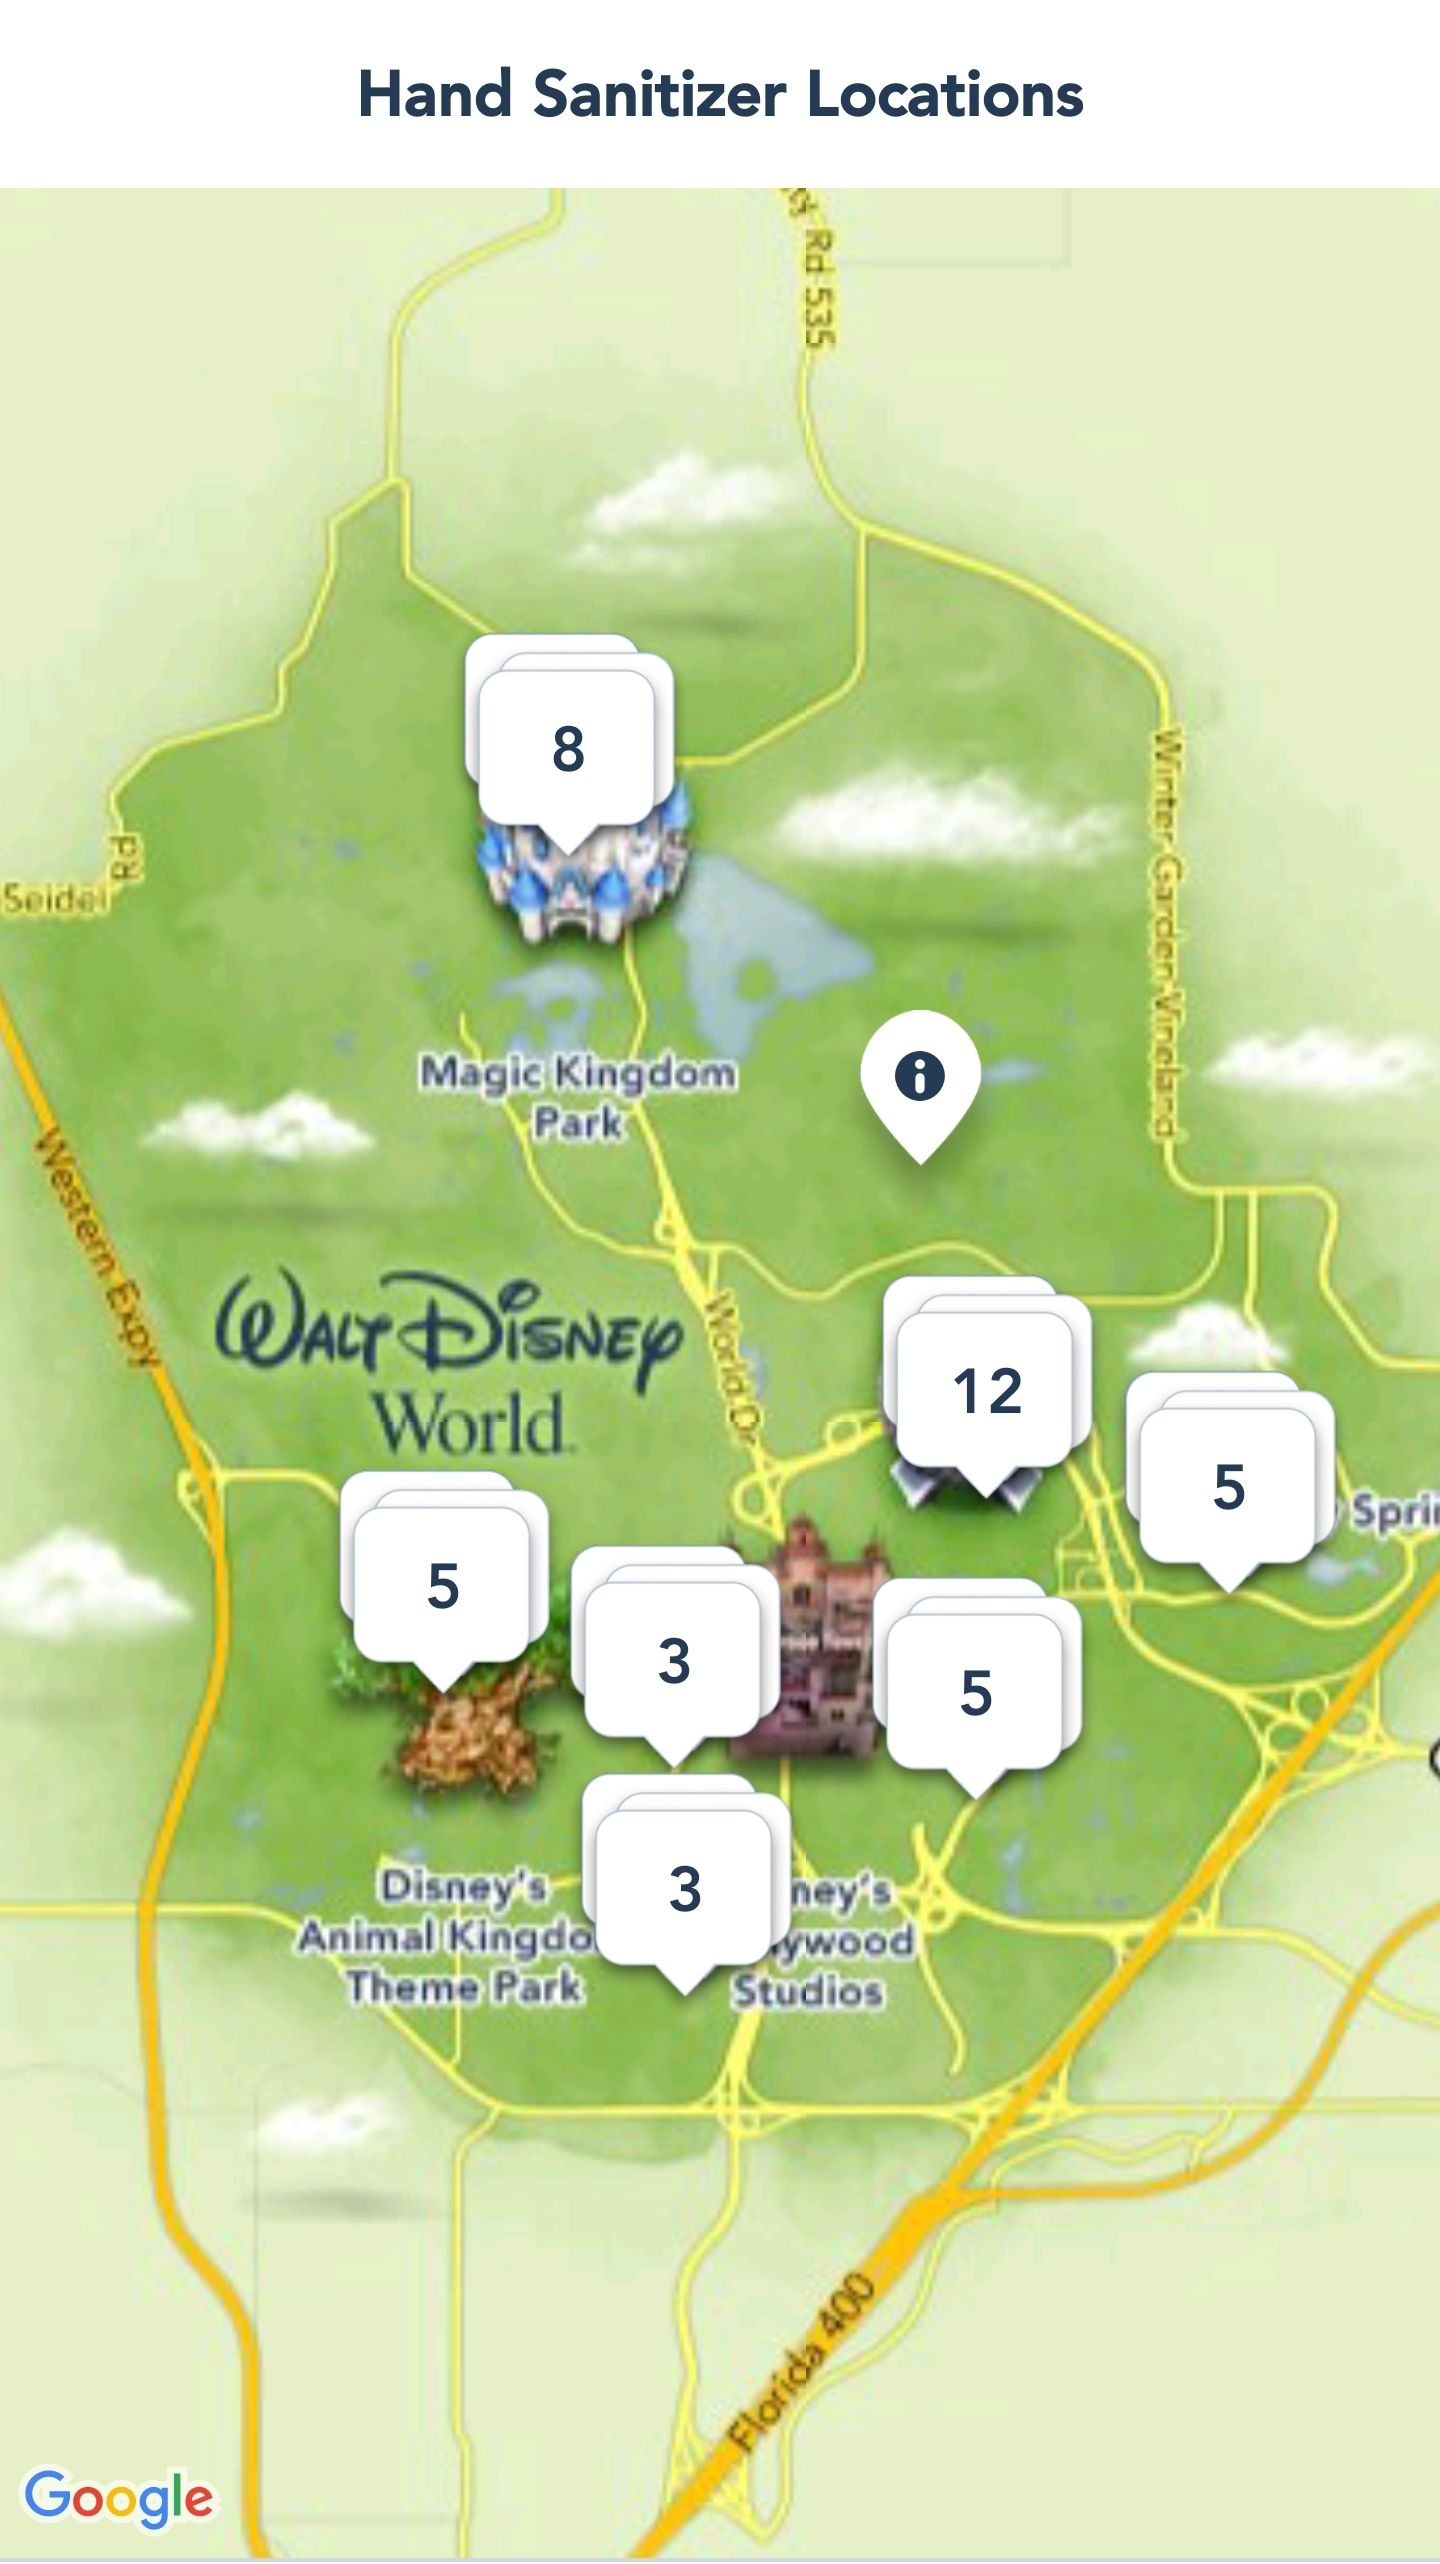 Disney World is now showing Hand Sanitizer Locations on My